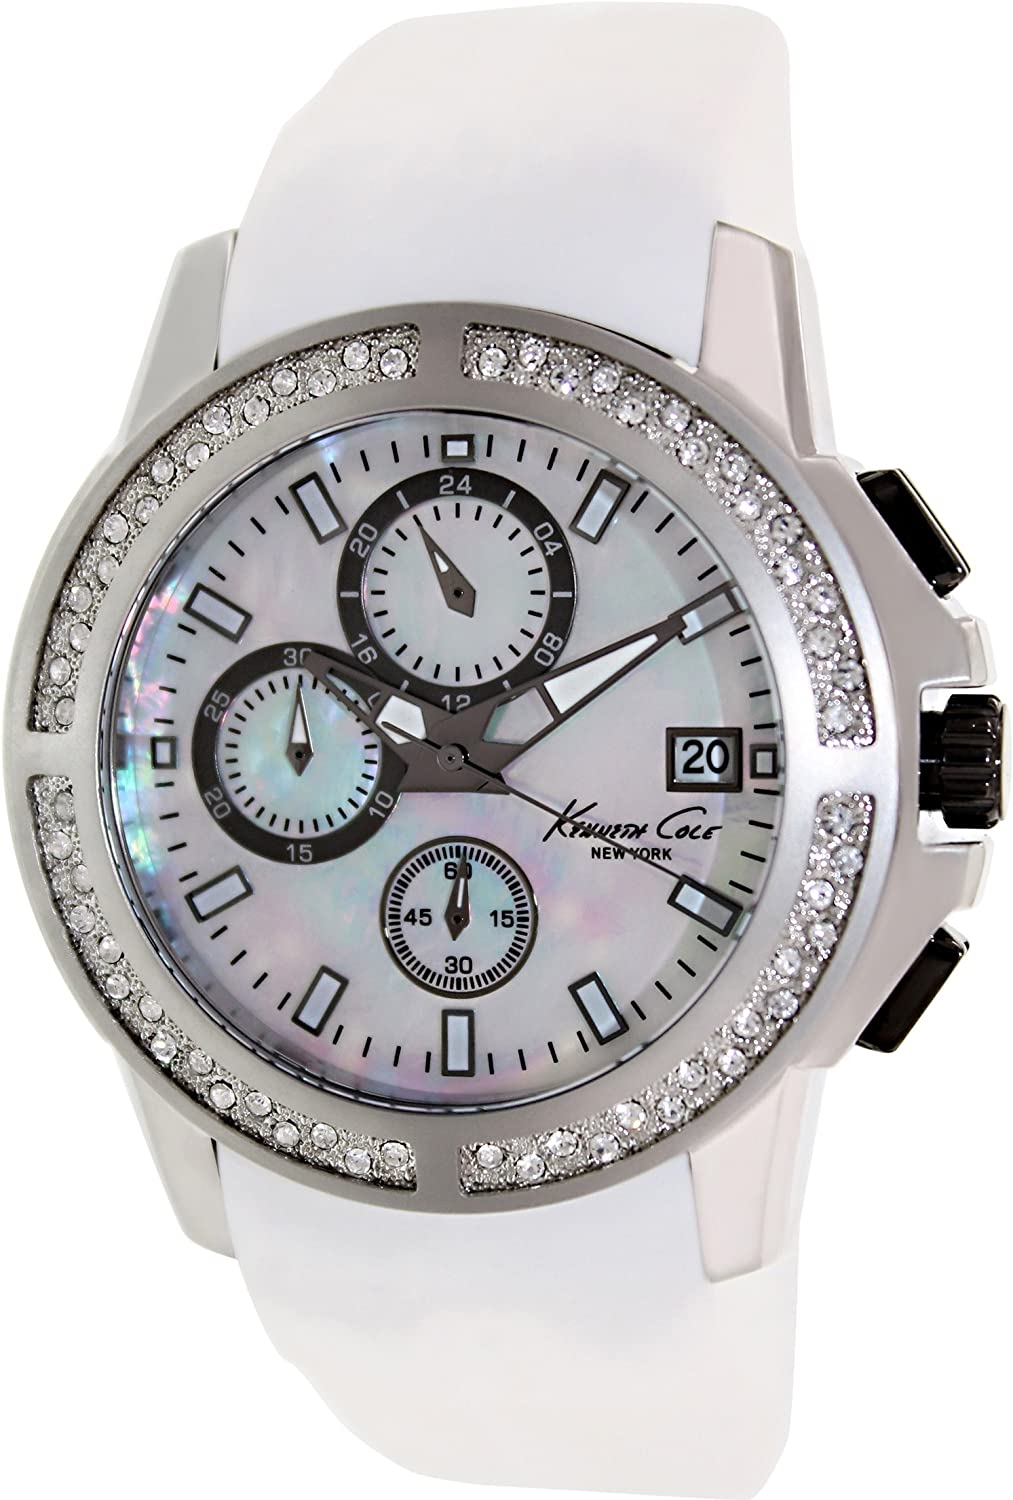 Kenneth Cole New York White Silicone Chronograph Mens Watch